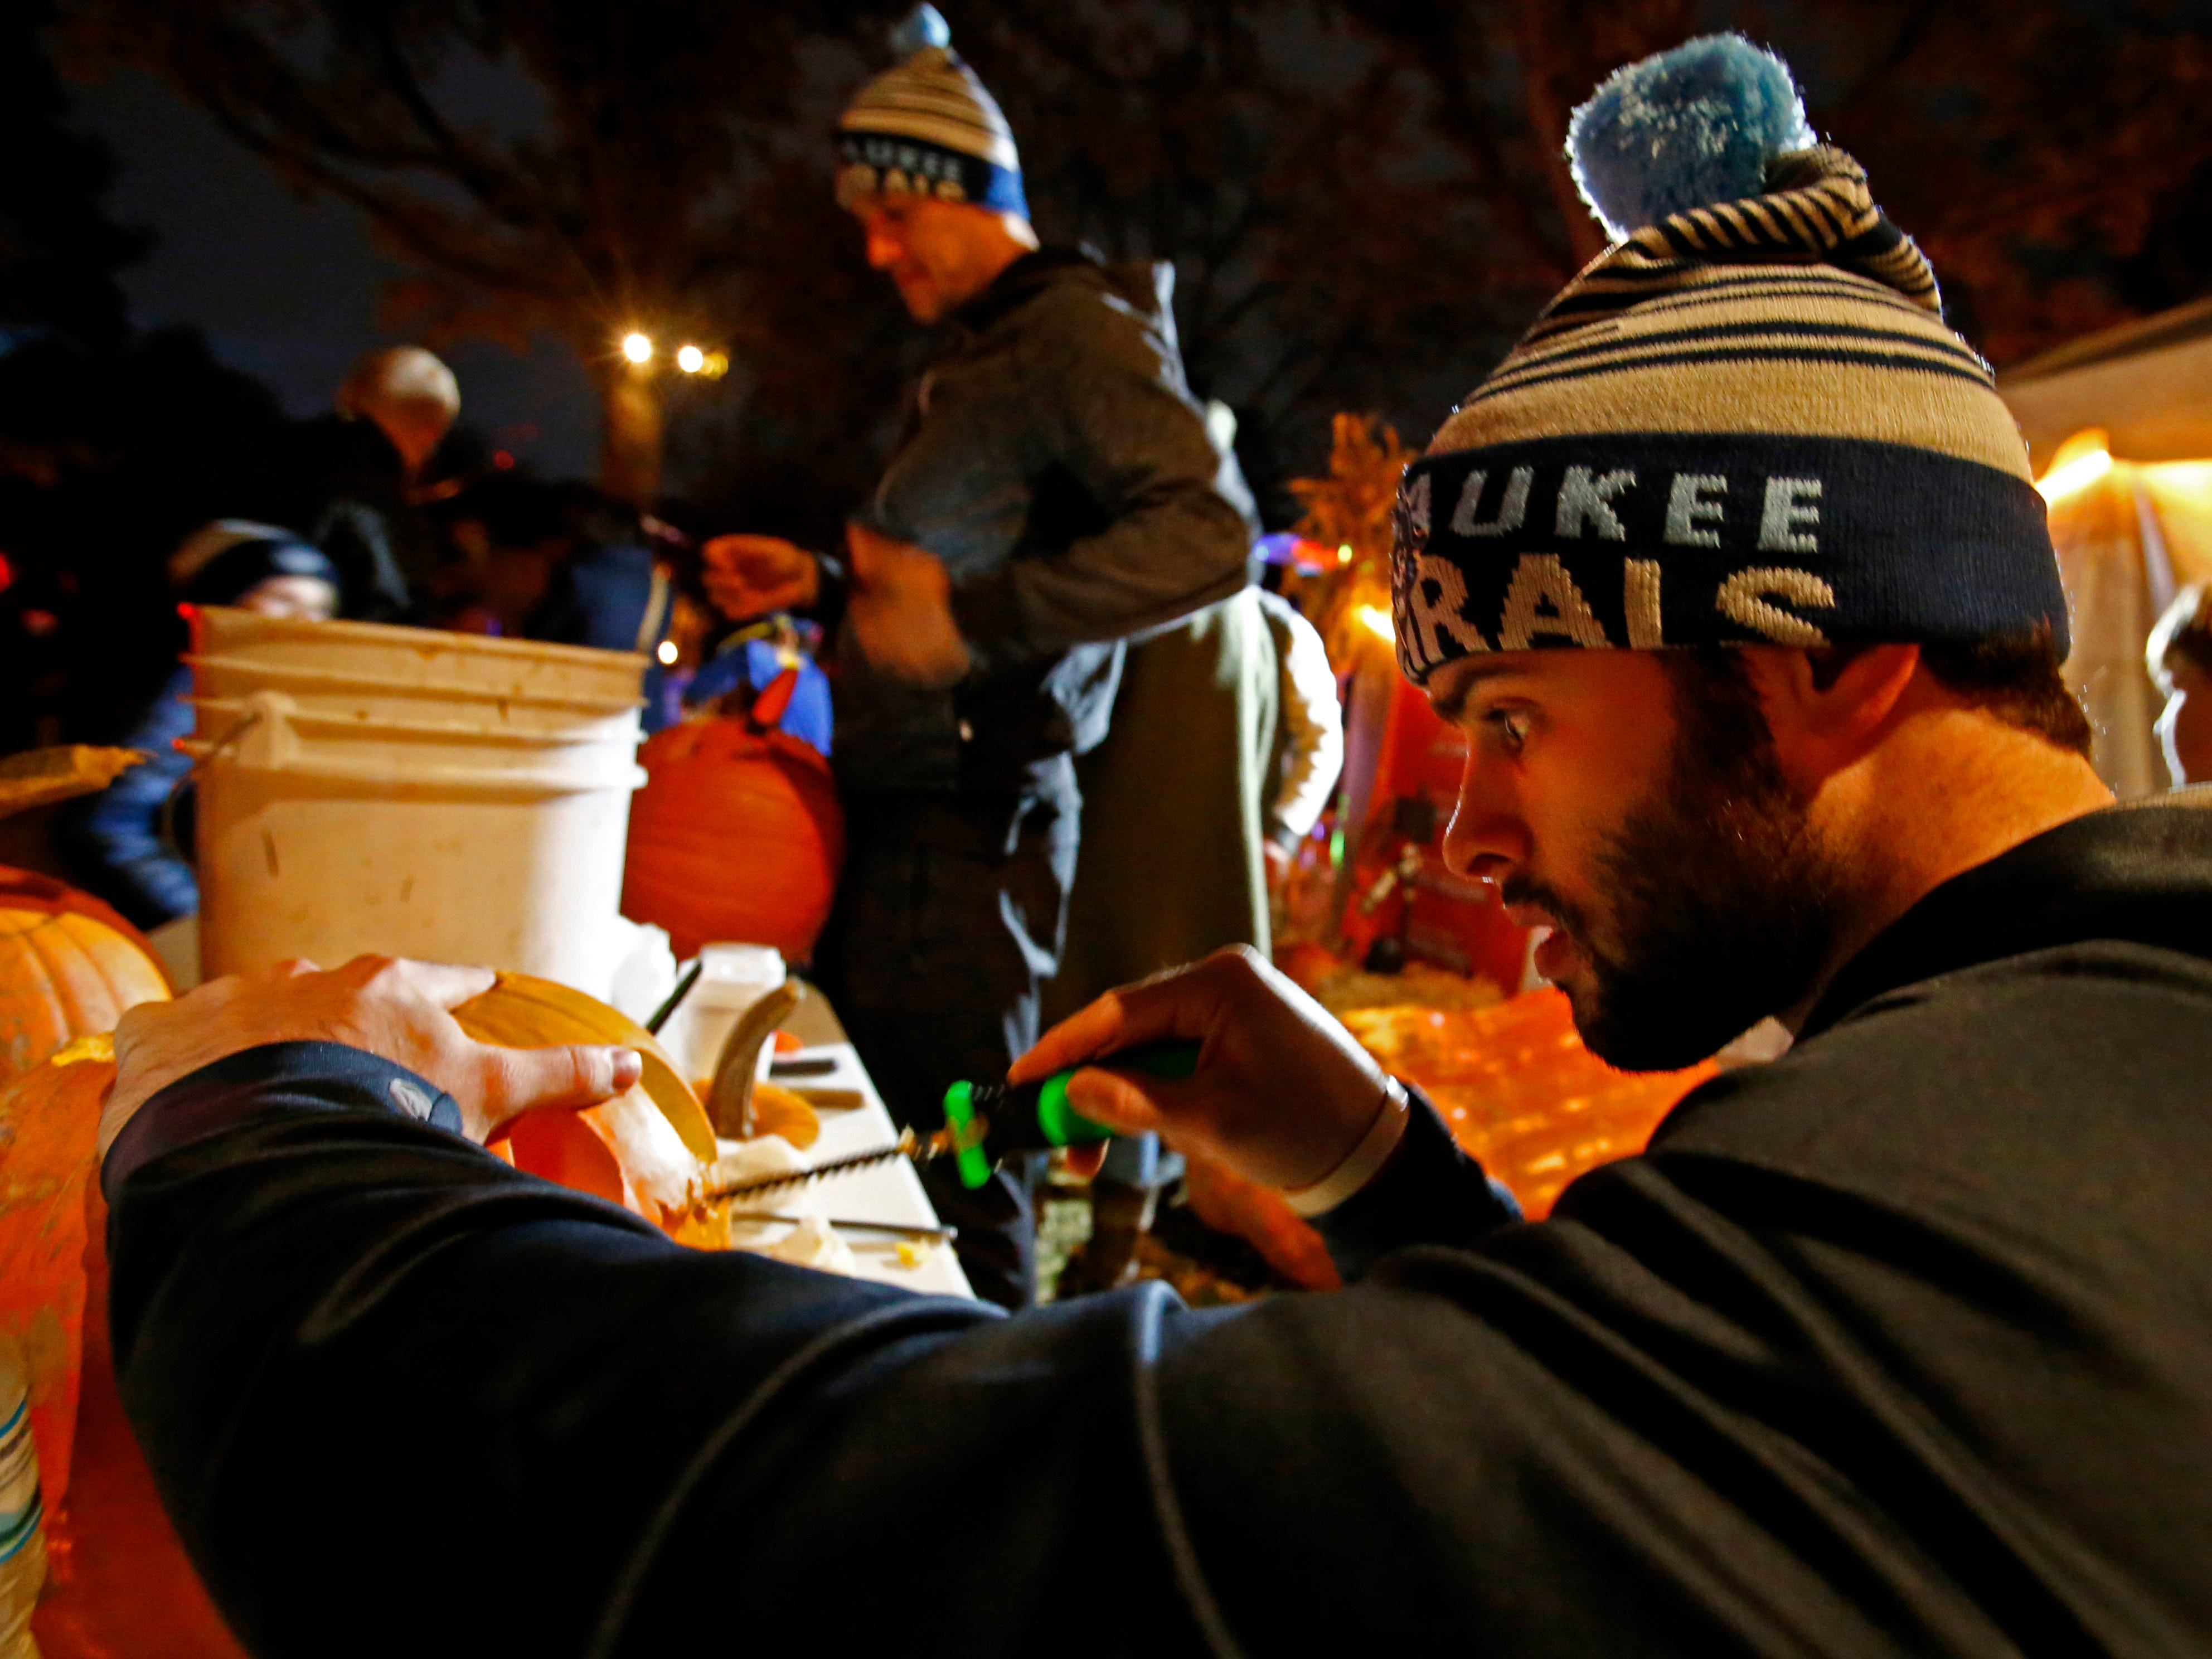 Colin Blackwell of Boston tries his hand at carving a pumpkin at the 32nd annual Whitefish Bay Great Pumpkin Festival at Old Schoolhouse Park, hosted by the Whitefish Bay Civic Foundation, on Oct. 25. The festival runs from 6 to 9 p.m. Wednesday, Oct. 24, through Sunday, Oct. 28.